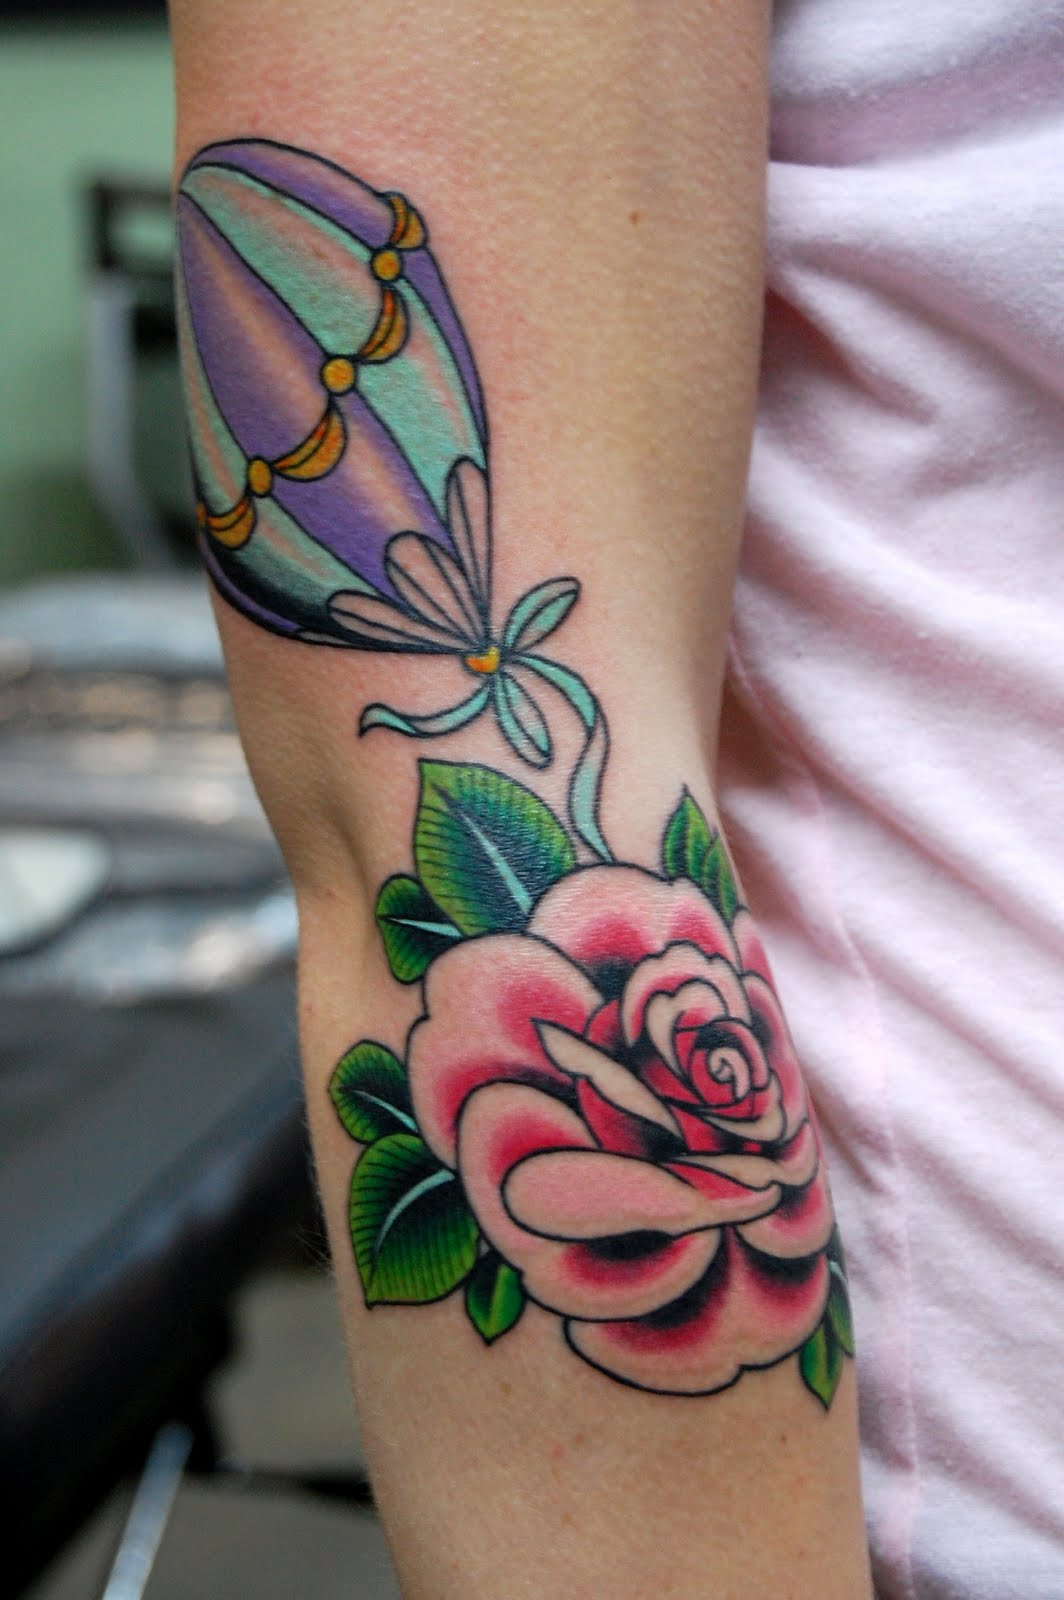 Inkerviews jinxi boo for Neo traditional rose tattoo